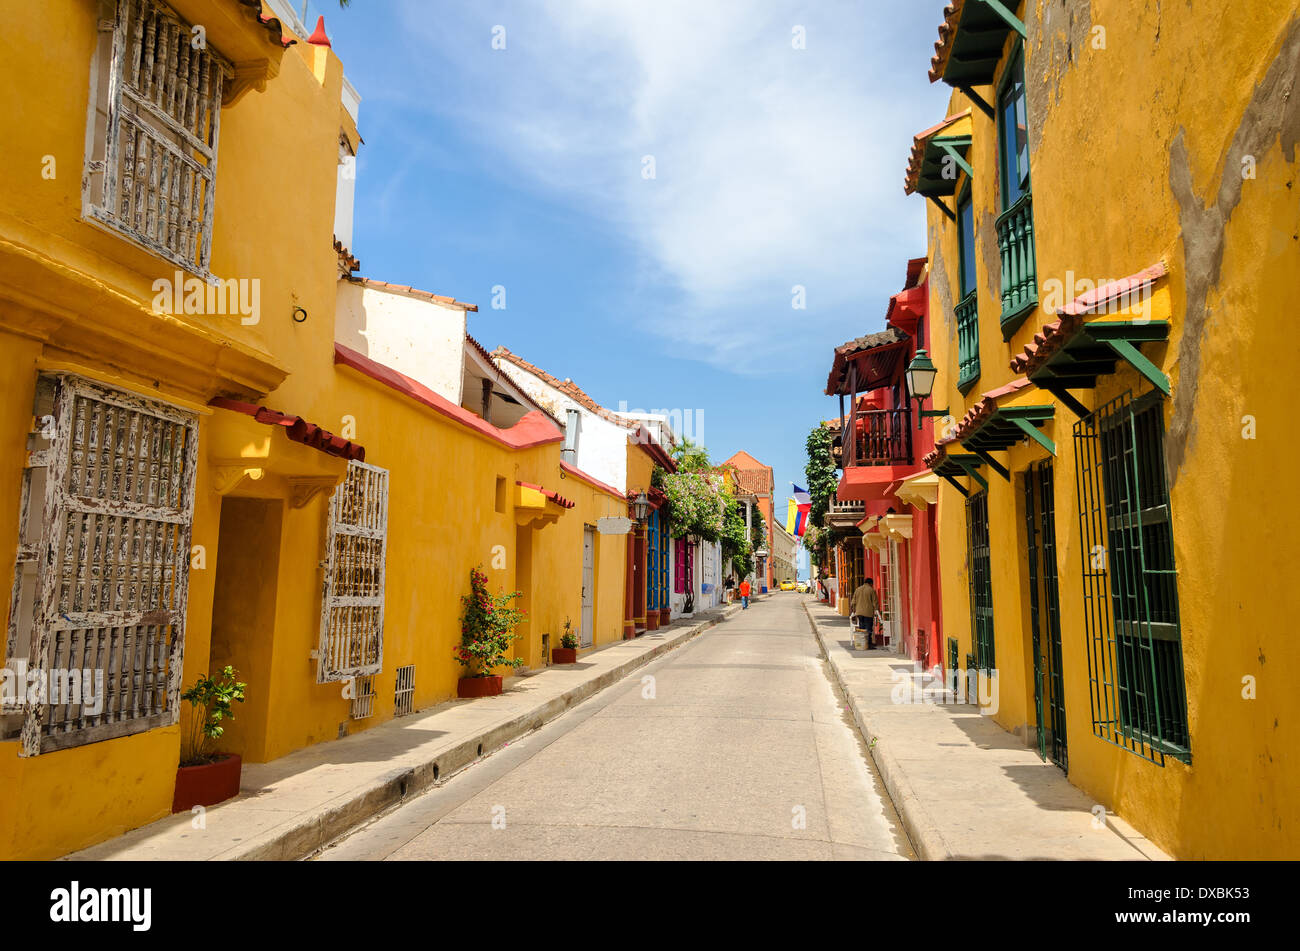 Typical street scene in Cartagena, Colombia of a street with old historic colonial houses on each side of it - Stock Image